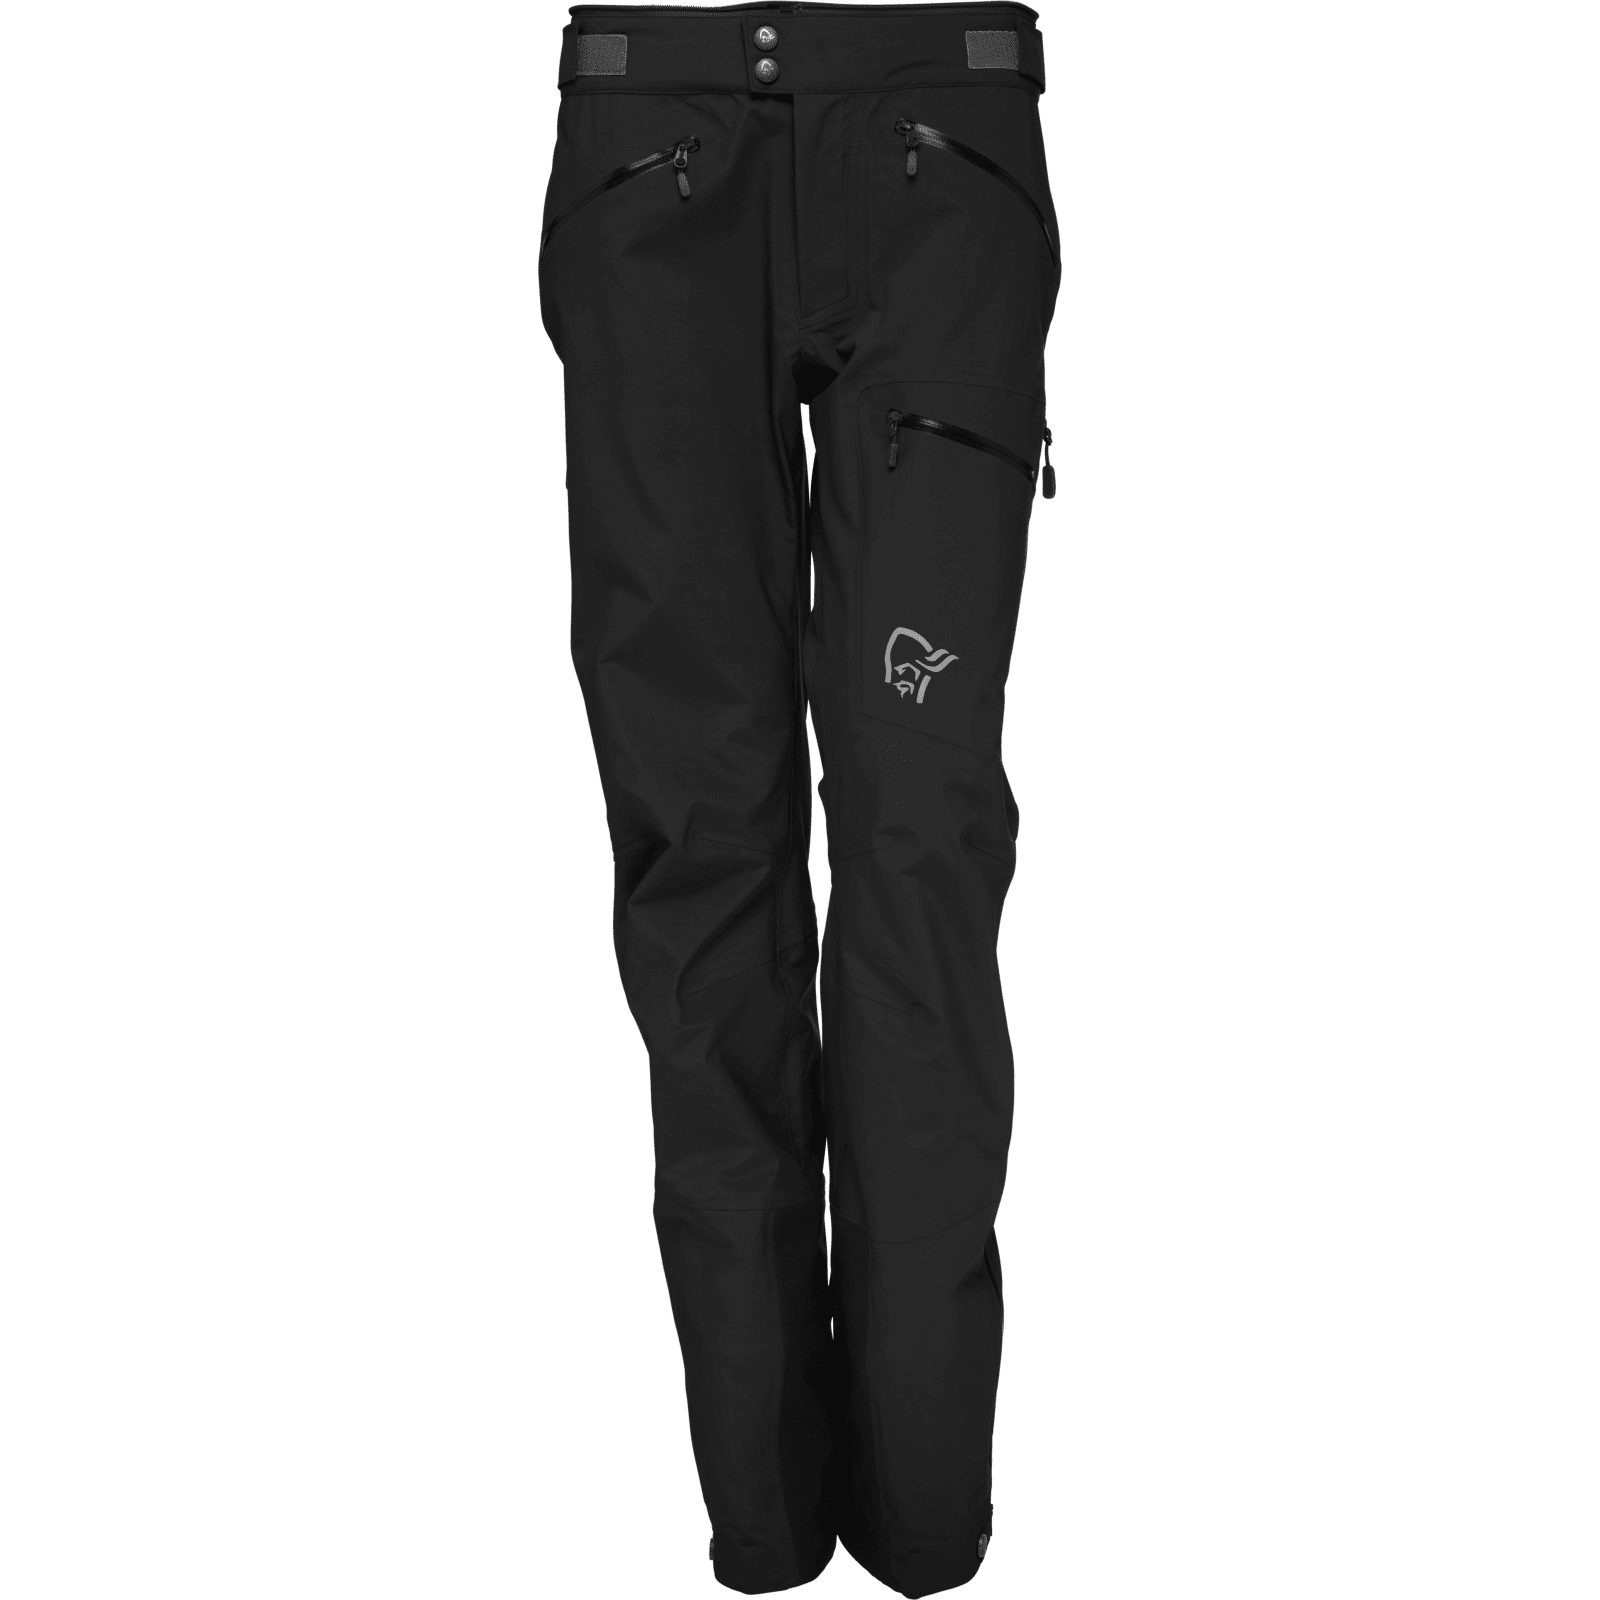 Trollveggen Gore Tex Light Pro Pants Women